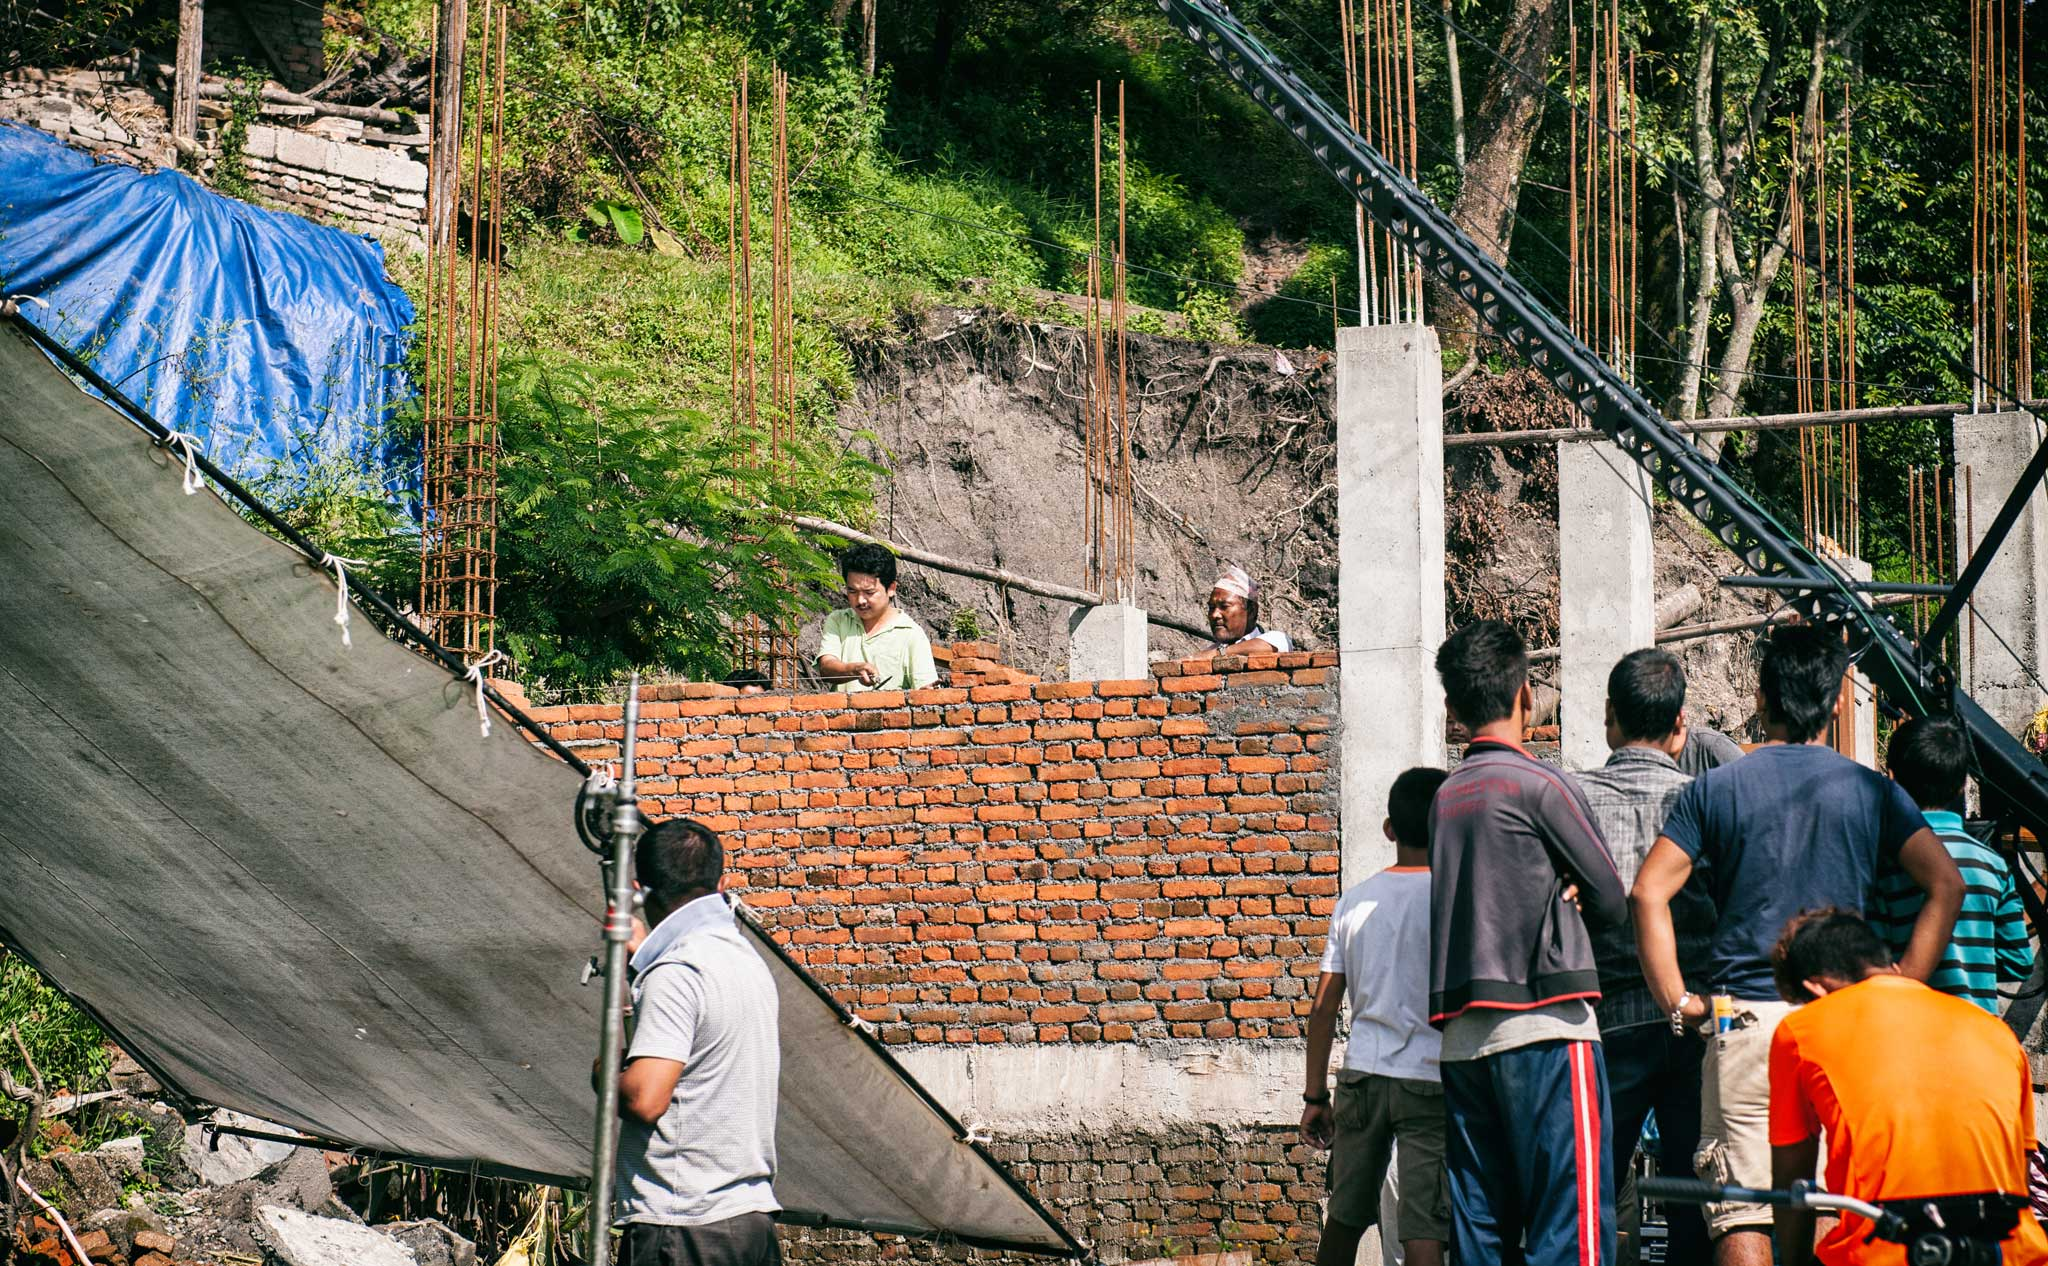 Noted Nepali stage actor Tika Bhakta Jirel is shown during filming of this house reconstruction scene in 'Nine Million Stars'. | Image courtesy of Jan Kath.